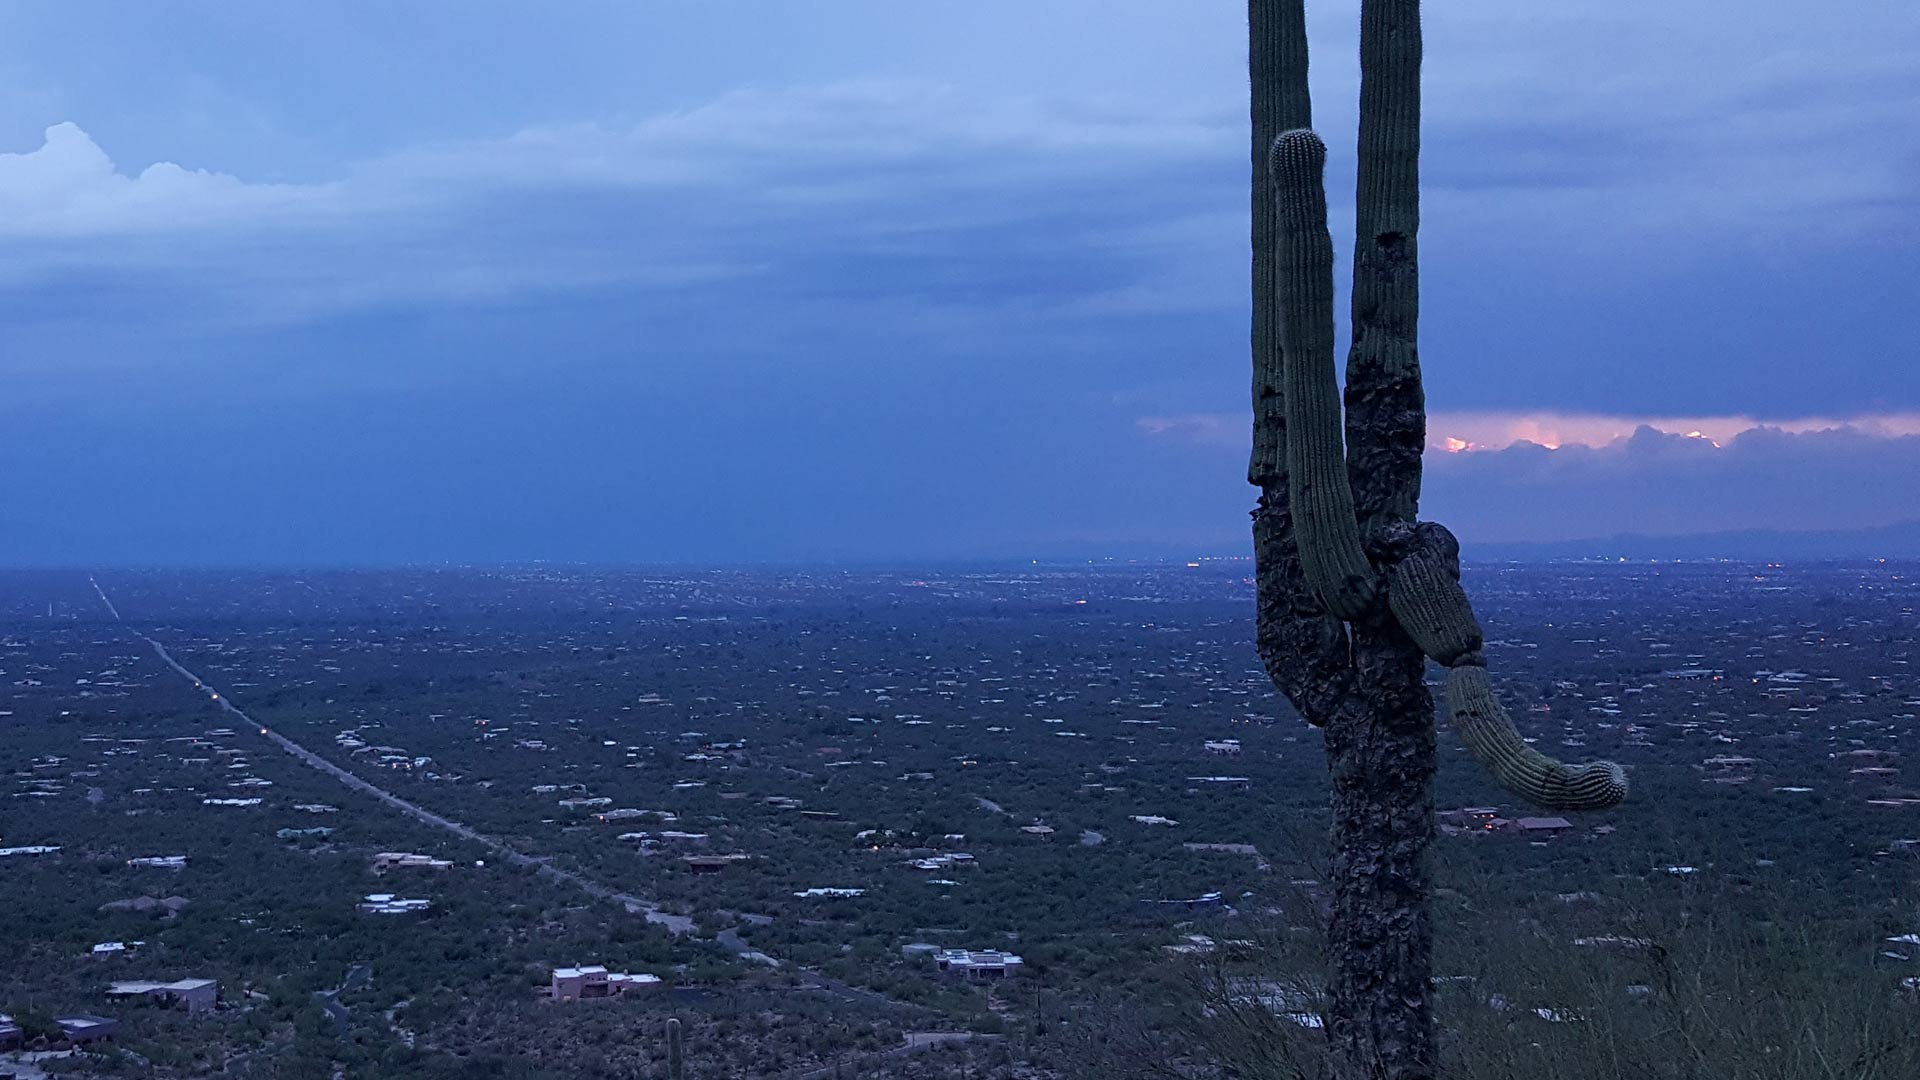 A saguaro cactus in front of a dark monsoon sky.